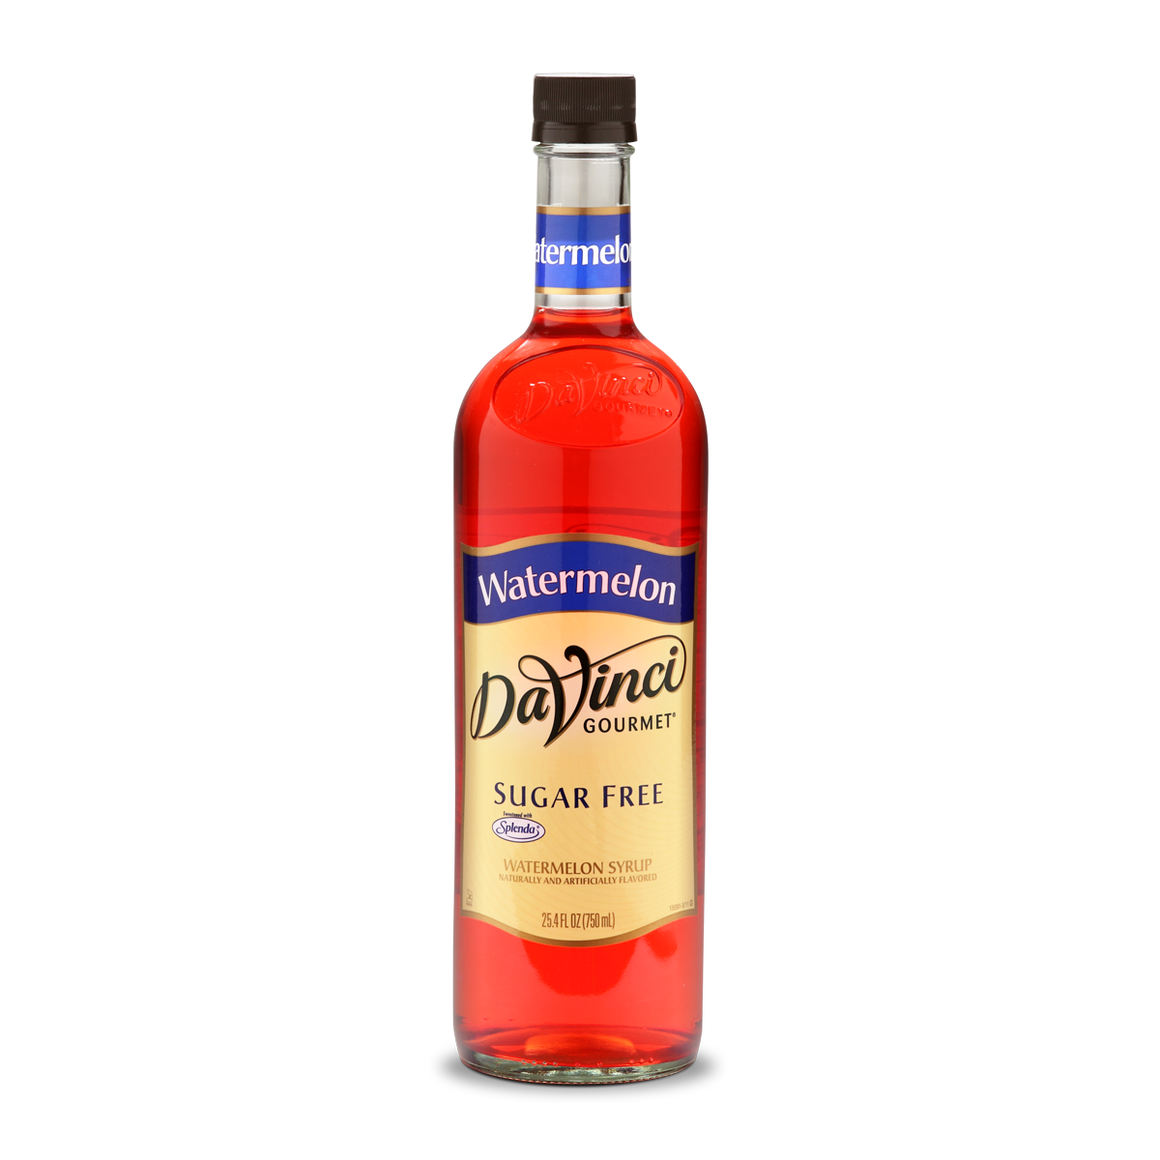 DaVinci - Sugar Free Syrup - Watermelon - 25.4 fl oz Bottle